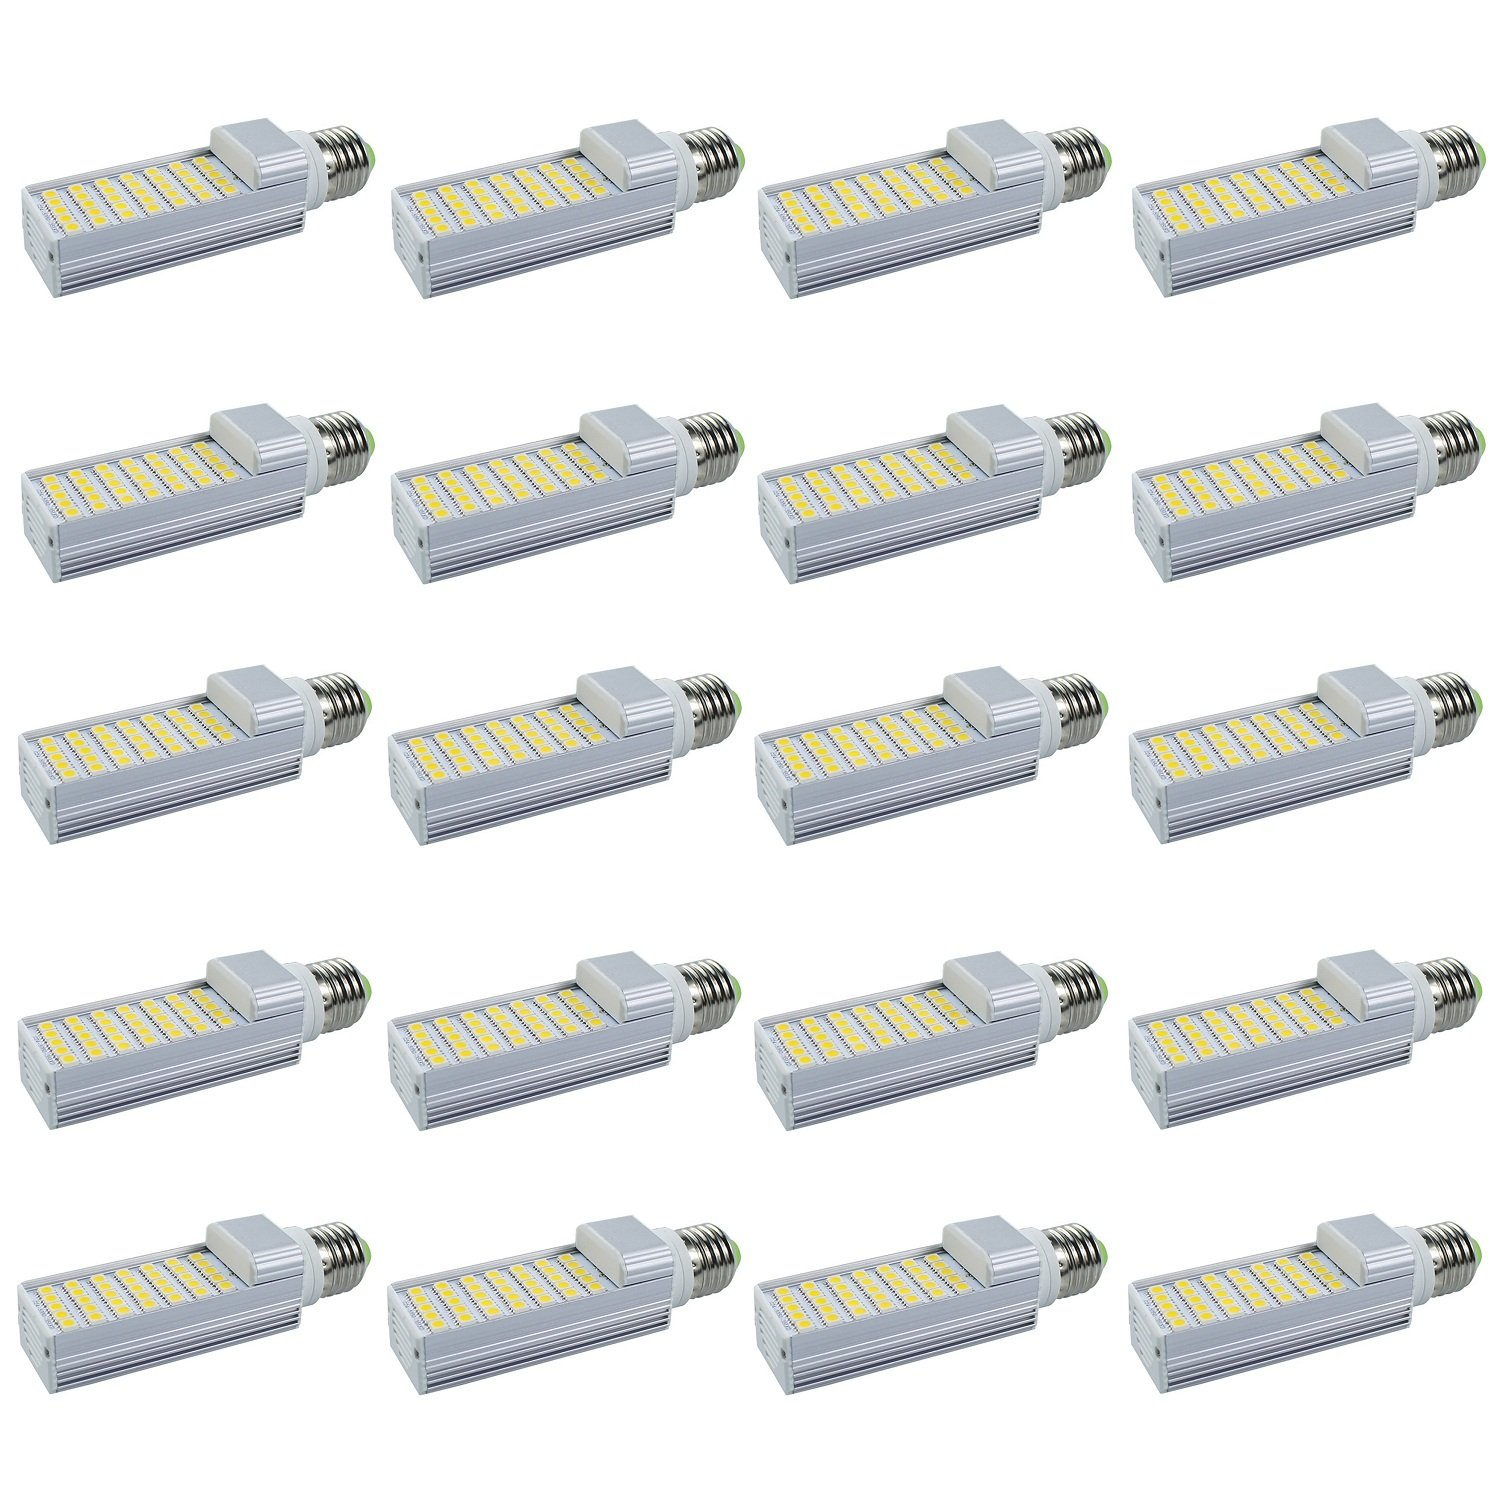 Masonanic LED 5W G24 E26 Base Compact Fluorescent Lamp Rotatable Aluminum Lamp E26 LED CFL/Compact Fluorescent Lamp,15W CFL Equivalent (3000K Warm White, 20 Pack)